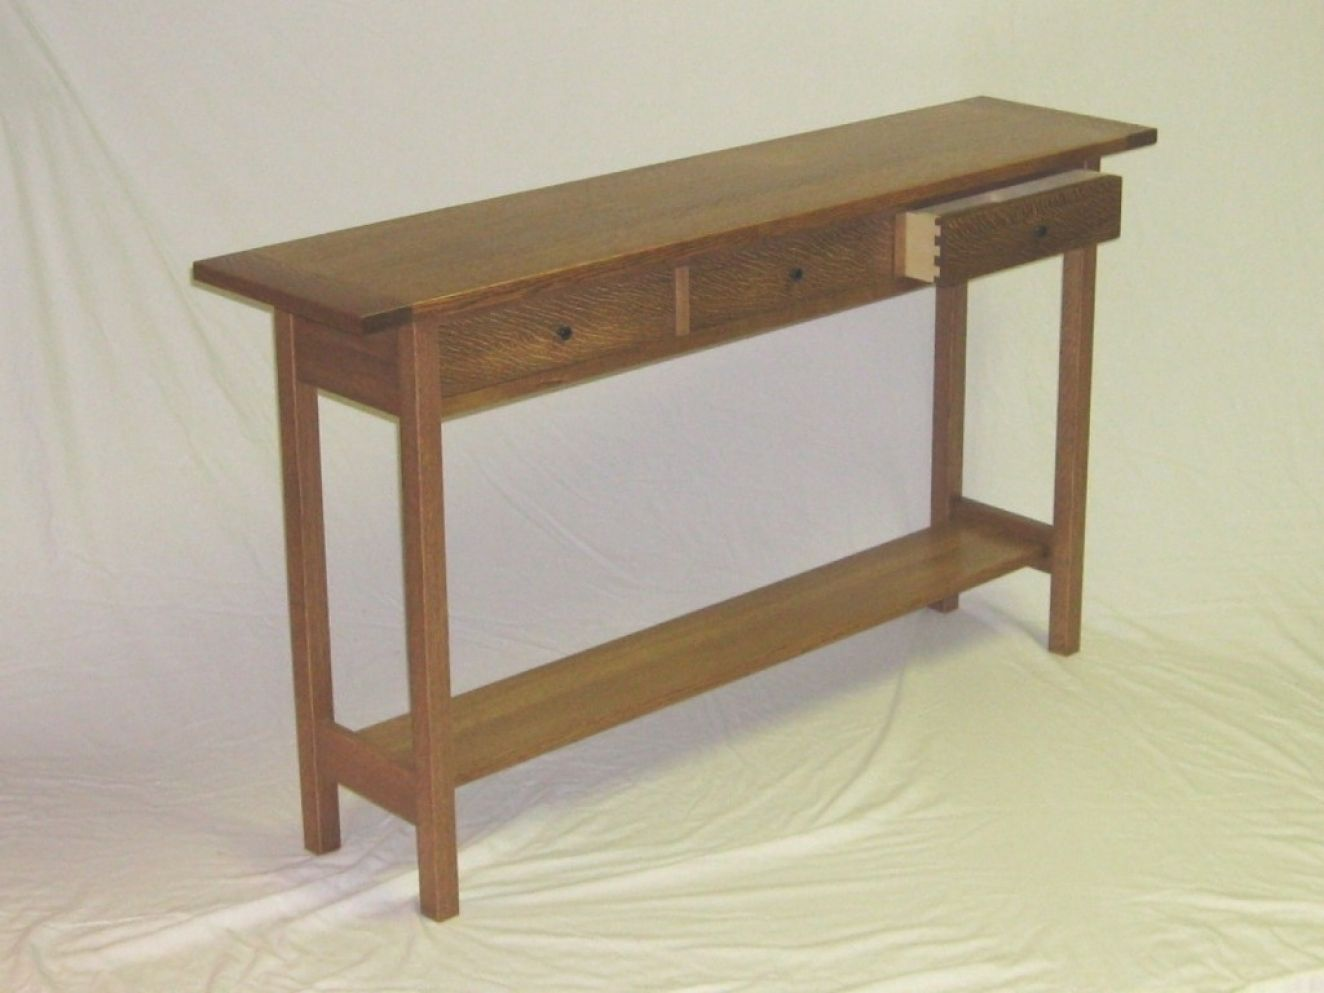 sofa table woodworking plans - best interior paint colors Check more at http://www.freshtalknetwork.com/sofa-table-woodworking-plans-best-interior-paint-colors/